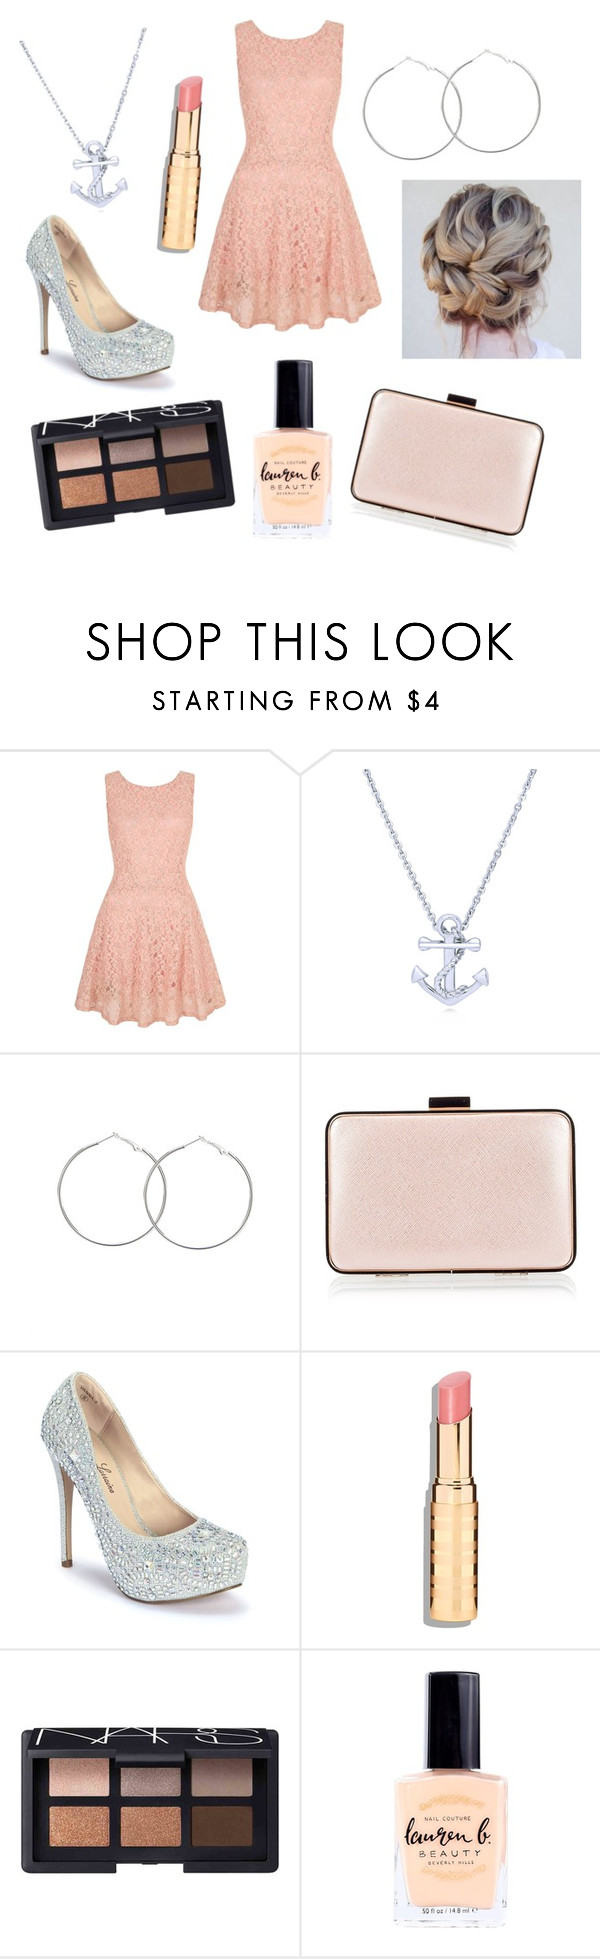 """""""Smile more :)"""" by rojoubdalia on Polyvore featuring Yumi, BERRICLE, Coccinelle, Lauren Lorraine, NARS Cosmetics and Lauren B. Beauty"""